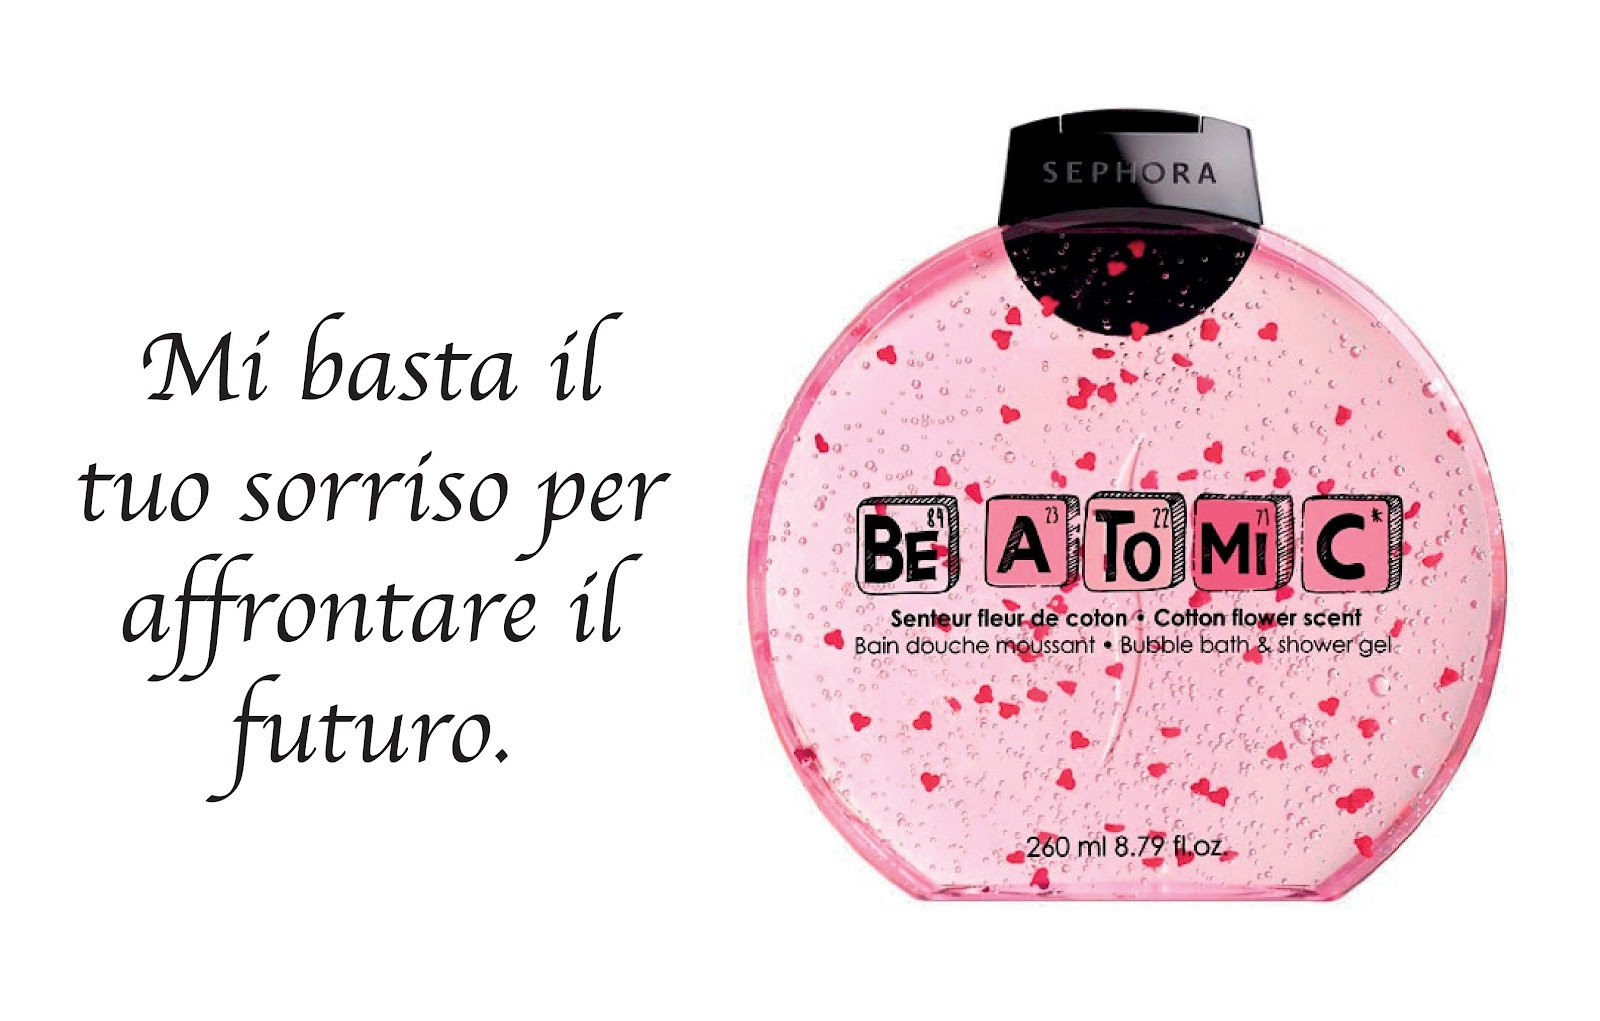 san valentino love amore cuore idee regalo per lei cosa regalare beauty profumo parfum sephora design 12 The Brian&Barry Building Milano